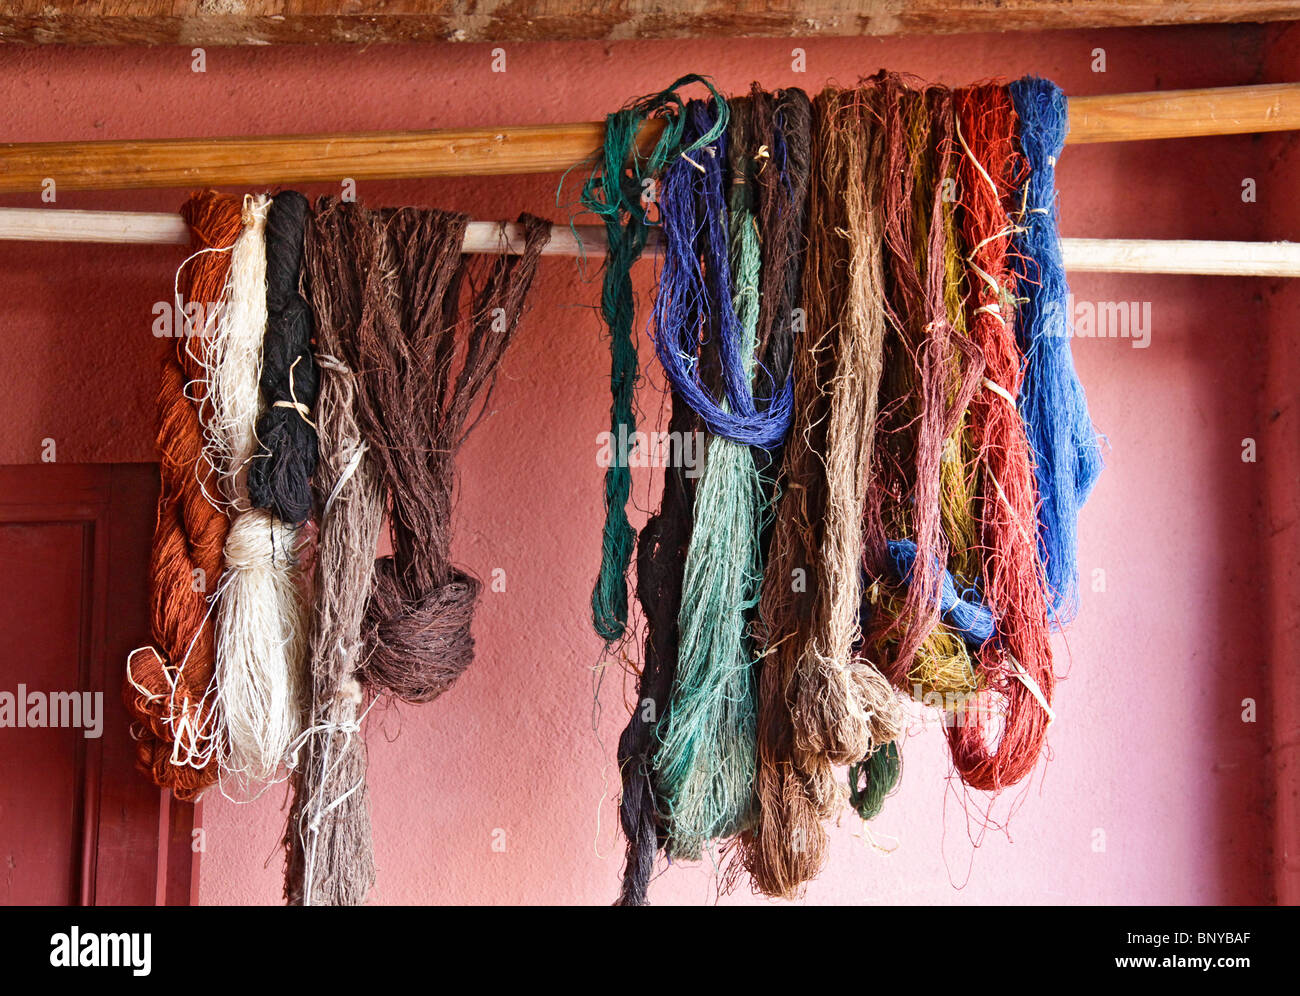 Skeins of naturally dyed silk drying on a rail, Ambalavao, Haute Matsiatra, south-eastern Madagascar - Stock Image